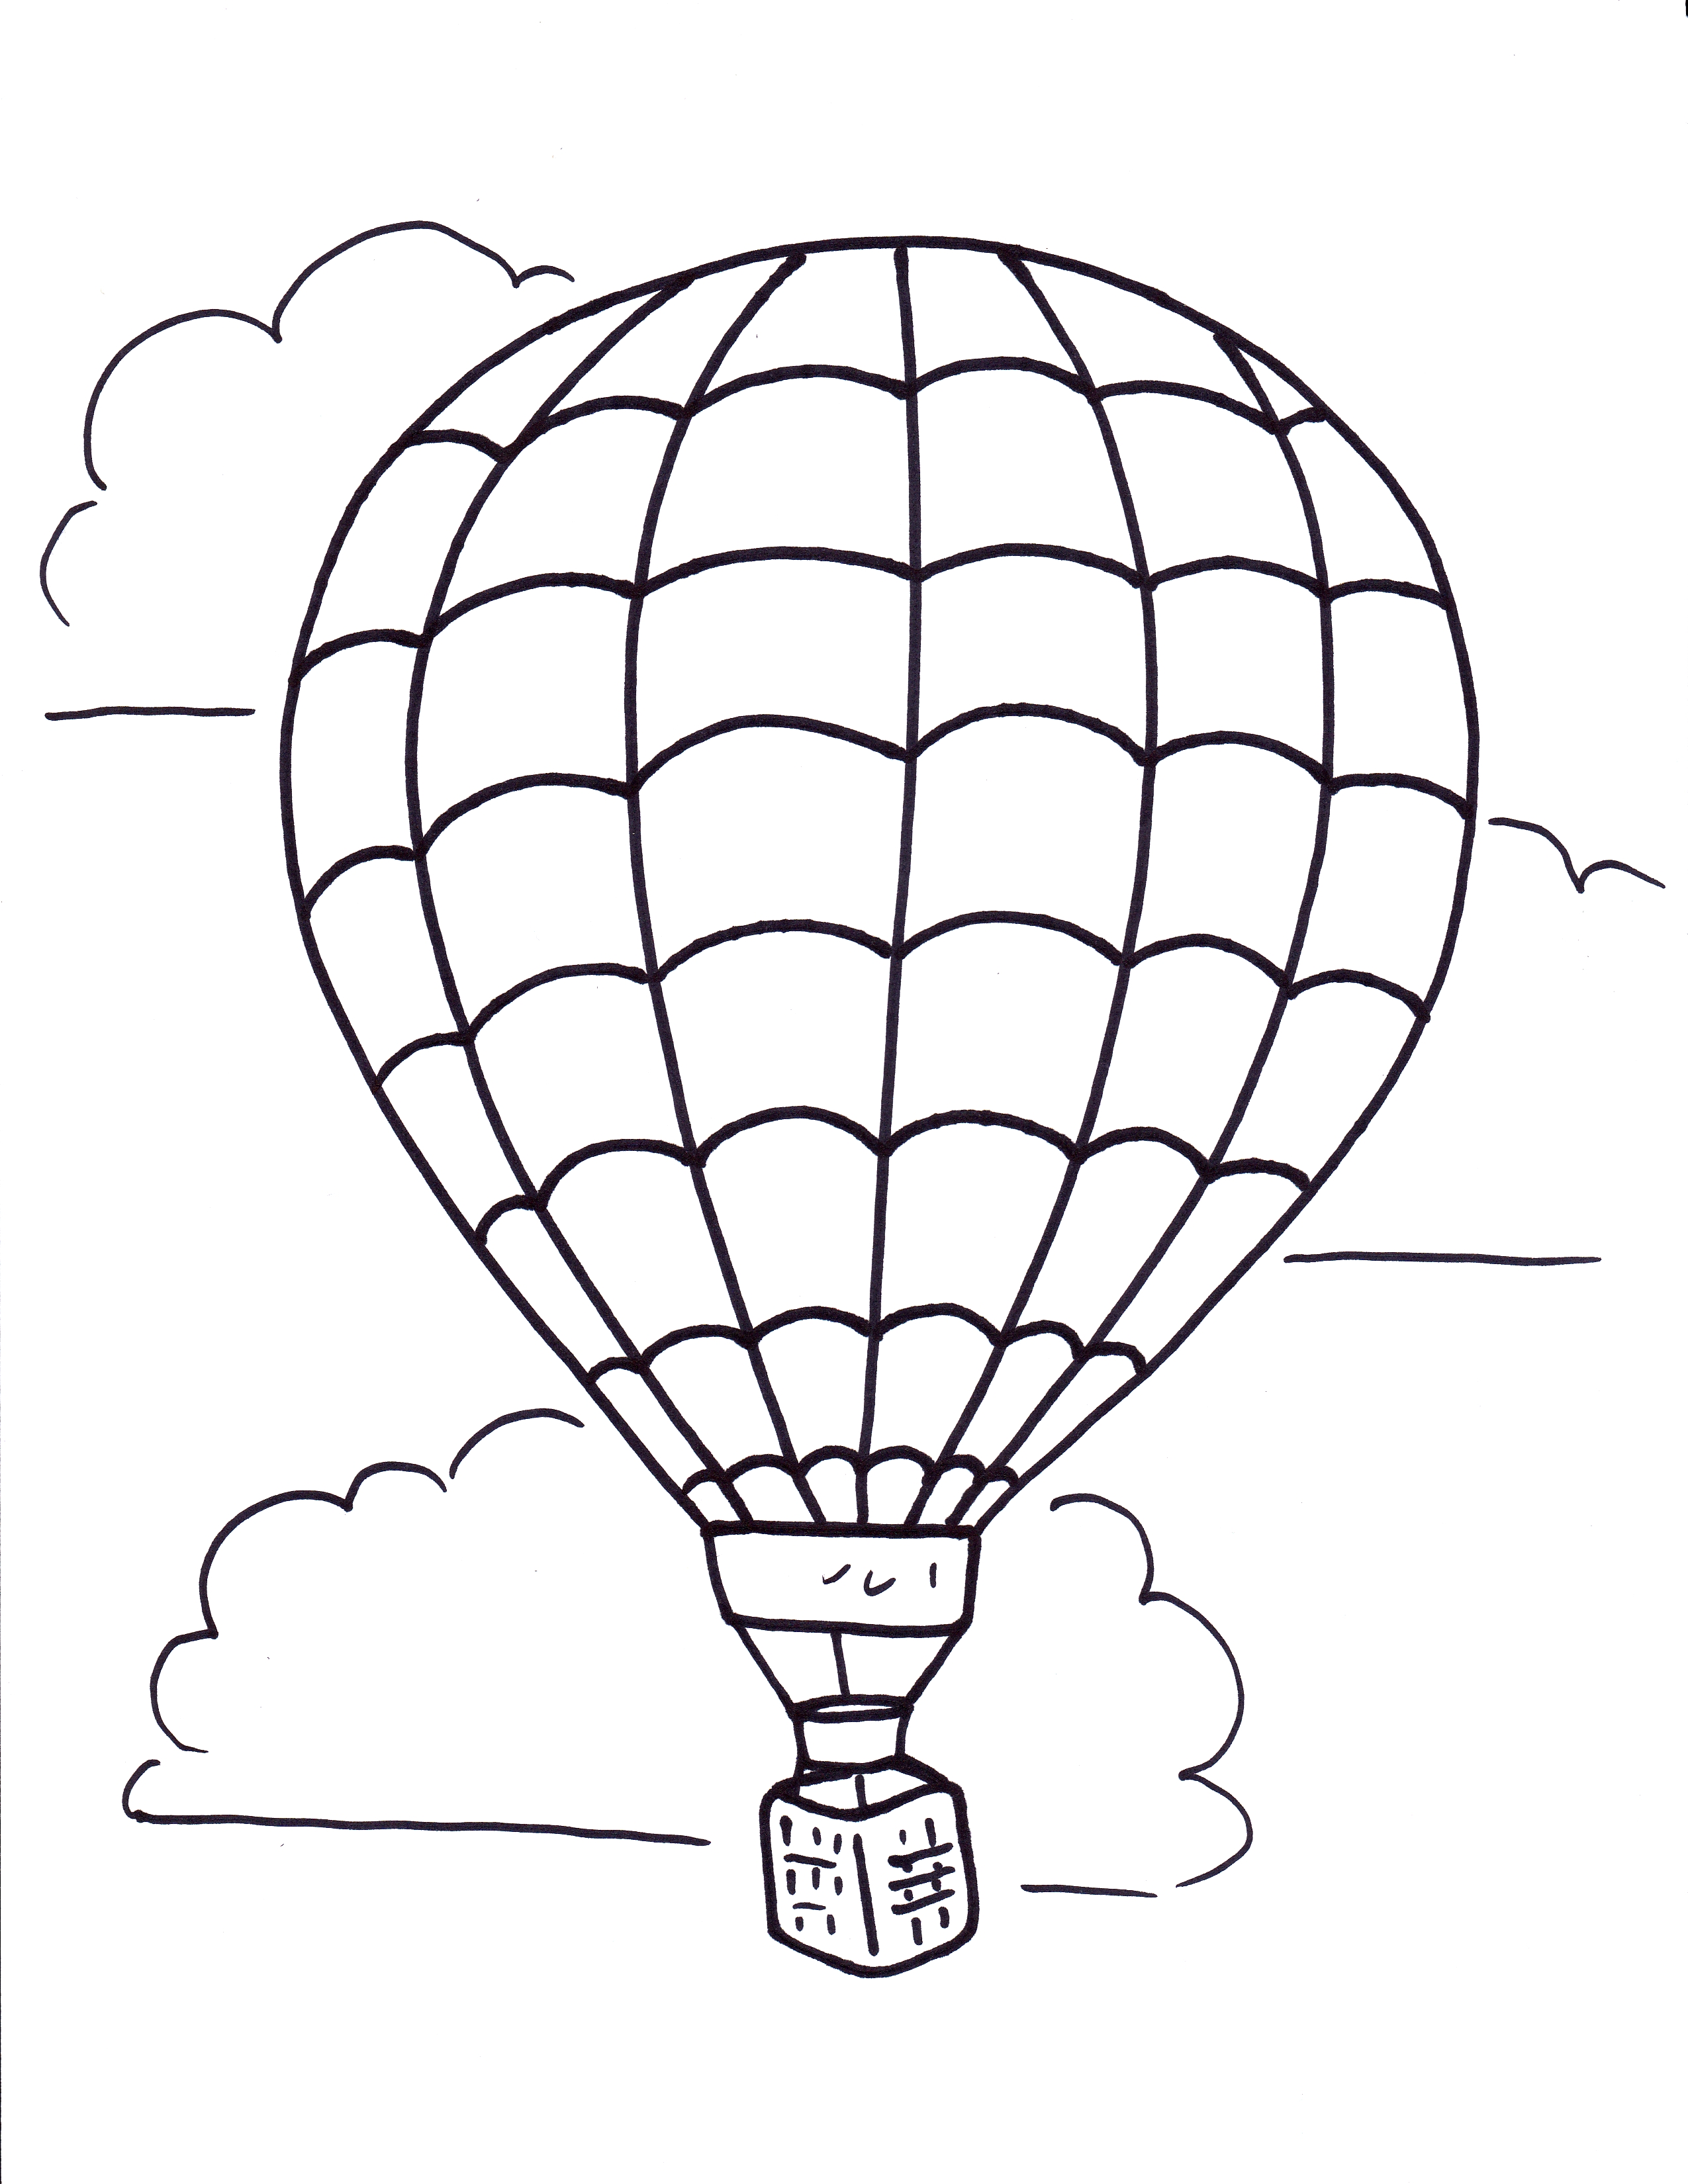 Hot air balloon black and white related hot air balloon coloring.